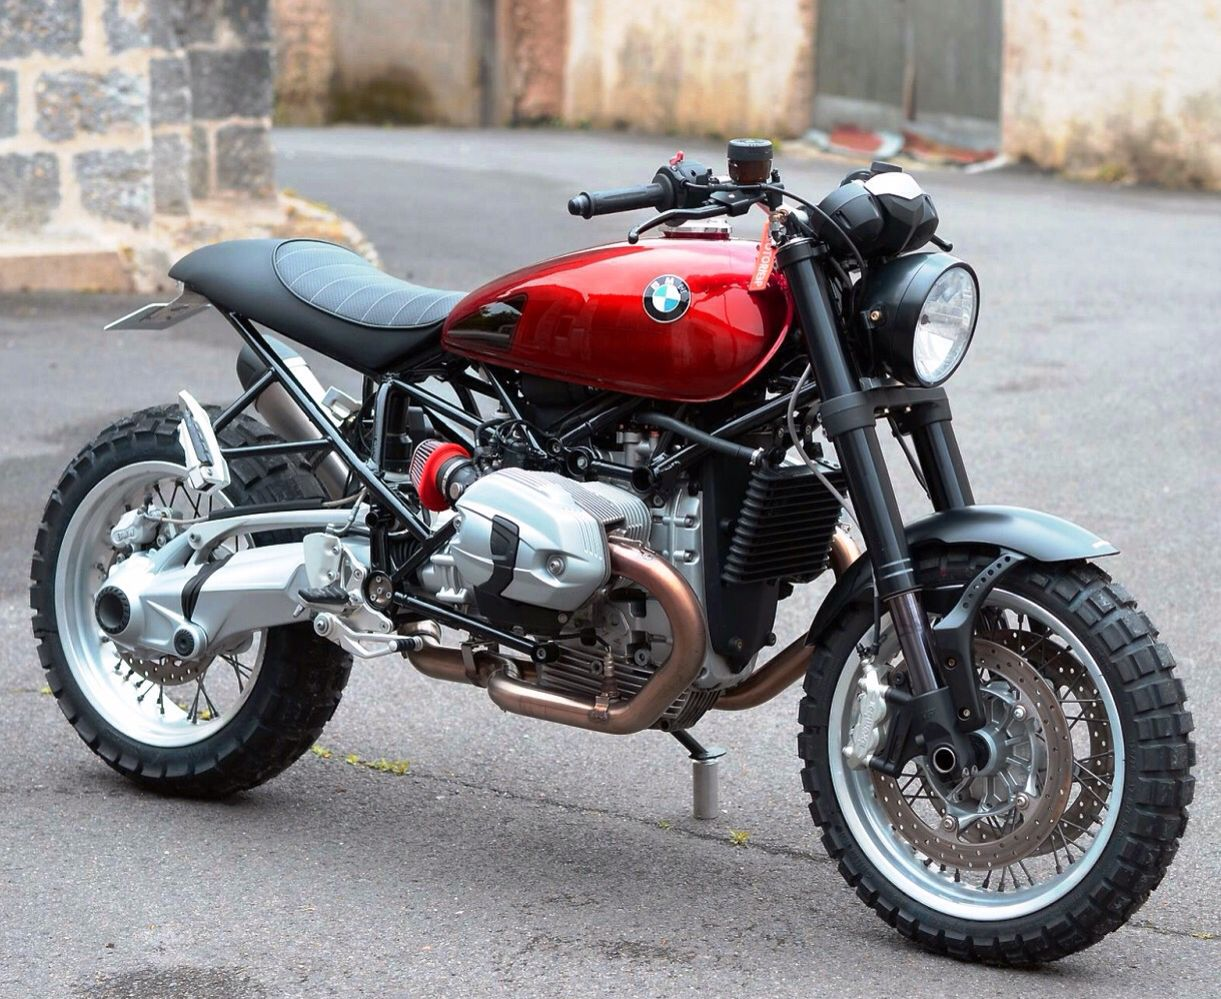 R1200r By Motorieep Cafe Racer Cafe Racer Motorcycle Cafe Bike